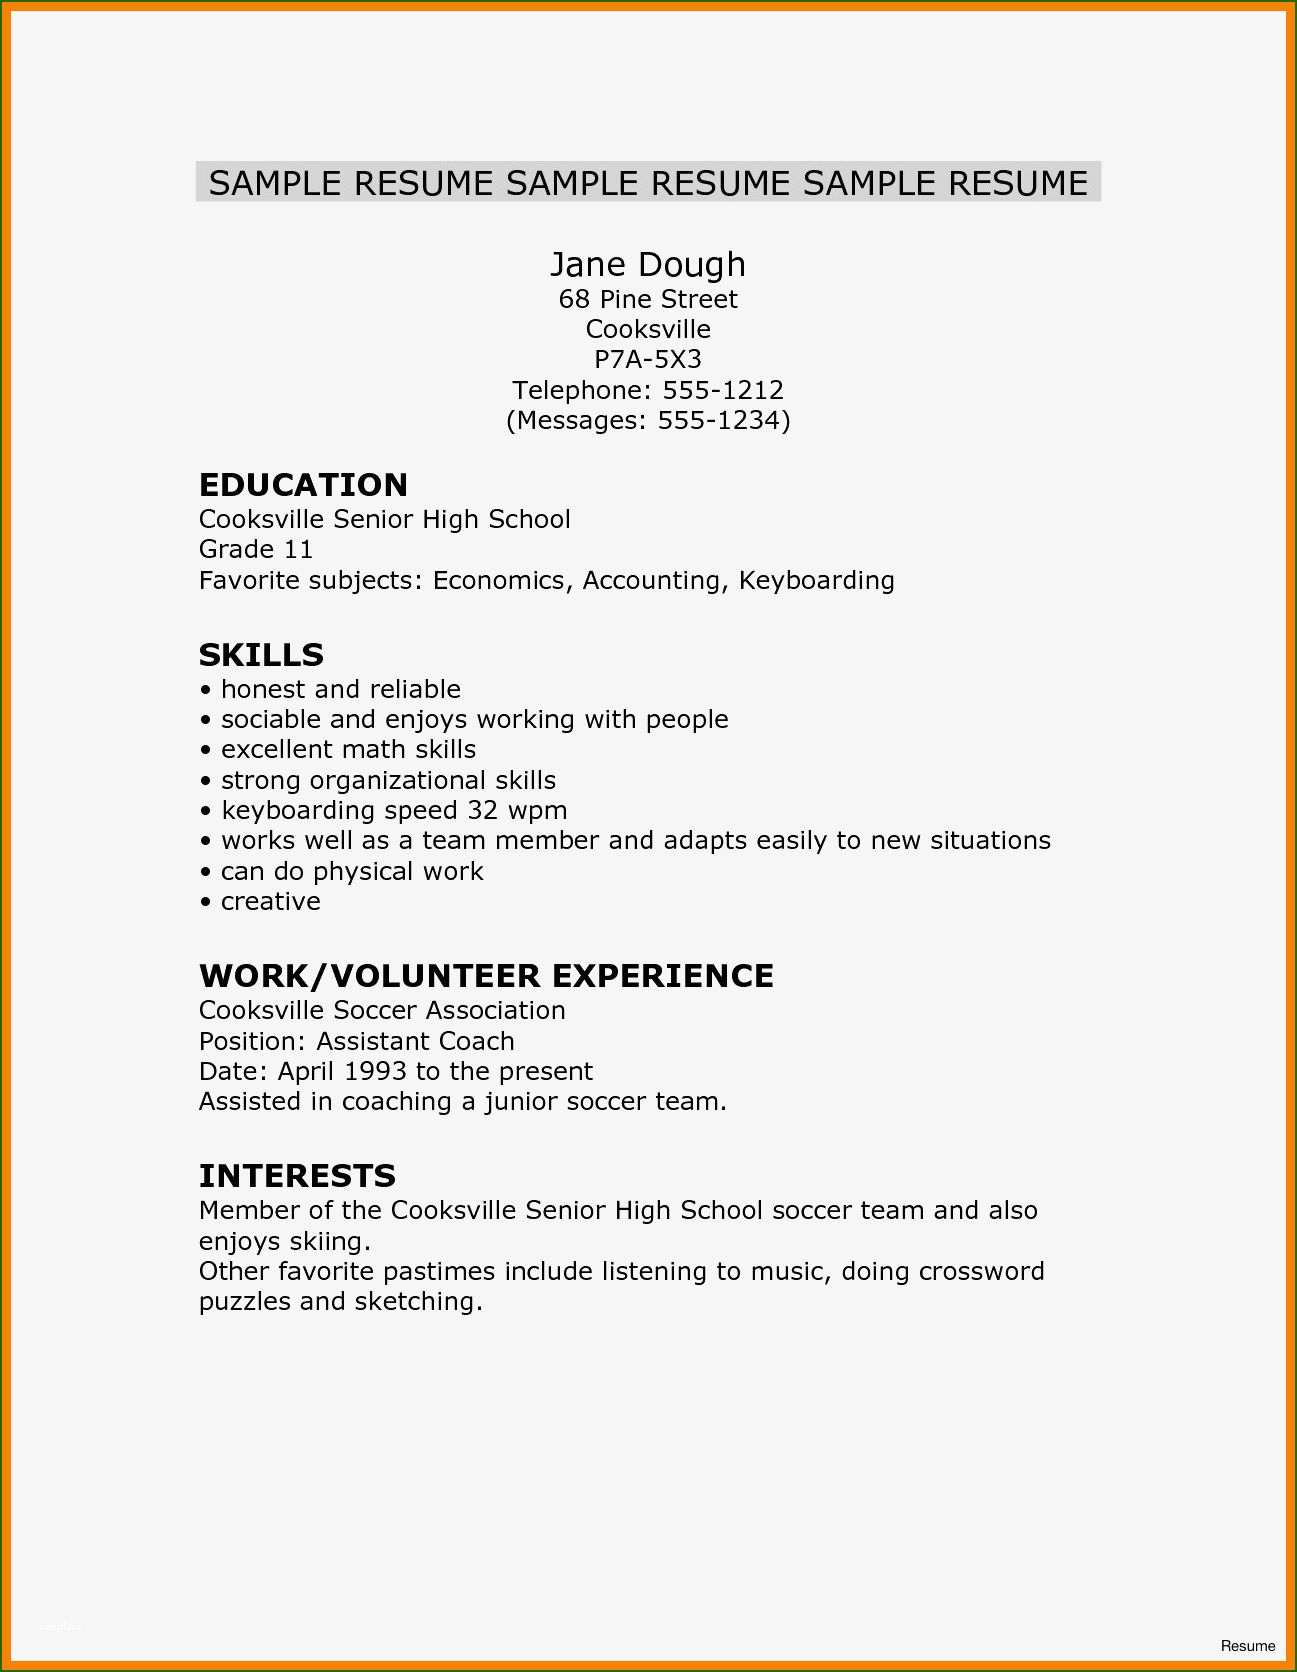 asset protection resume nursing school objective listing crossword experience format two Resume Resume Listing Crossword